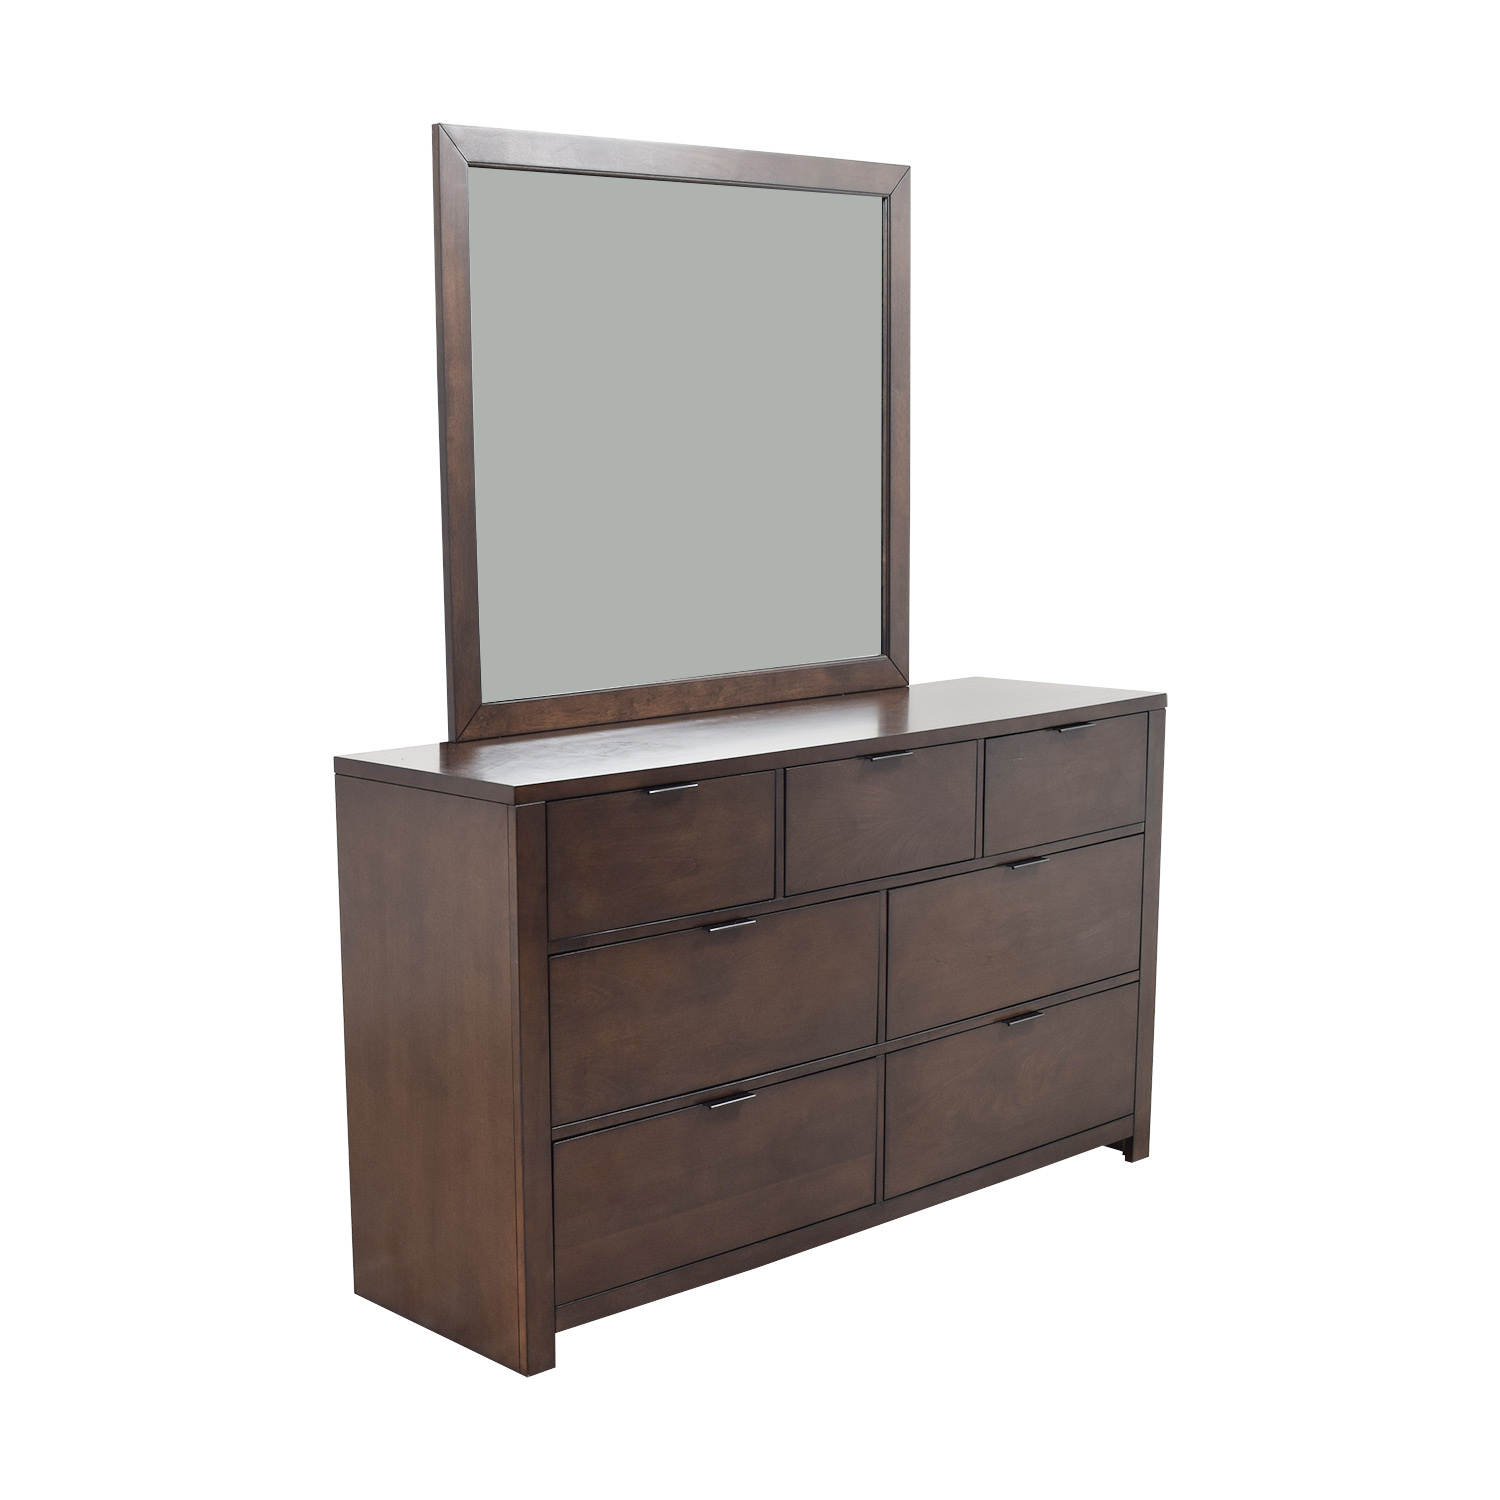 Home Meridian Home Meridian Wood Seven-Drawer Dresser with Mirror Dressers